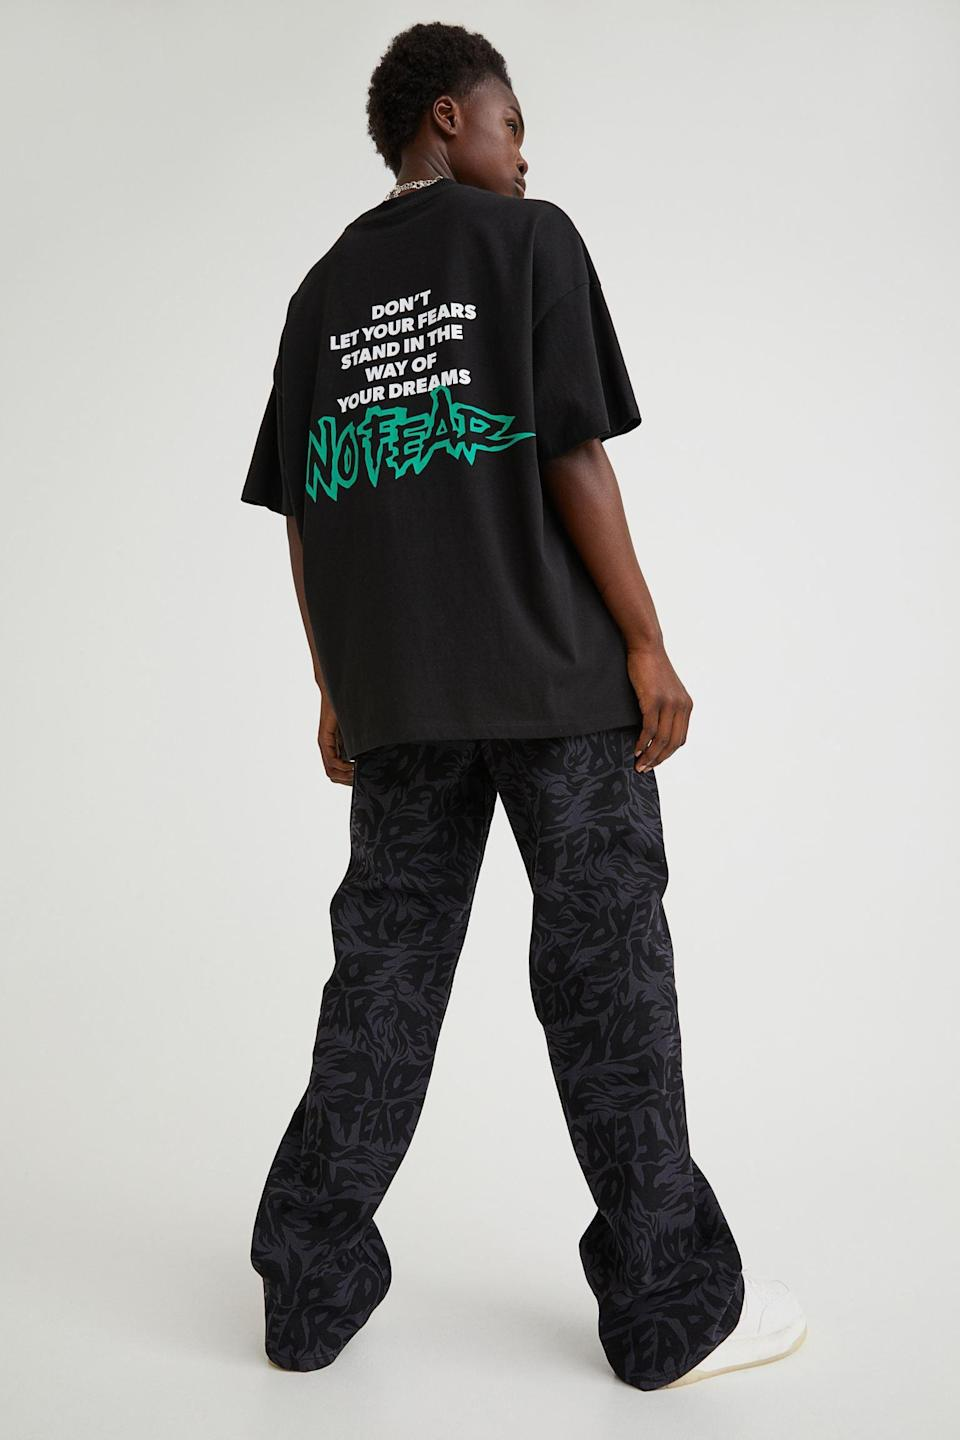 <p>A great black oversized t-shirt is always a good idea. This <span>No Fear x H&amp;M Oversized T-shirt</span> ($18) has a very cool graphic on the back that we can all get behind.</p>